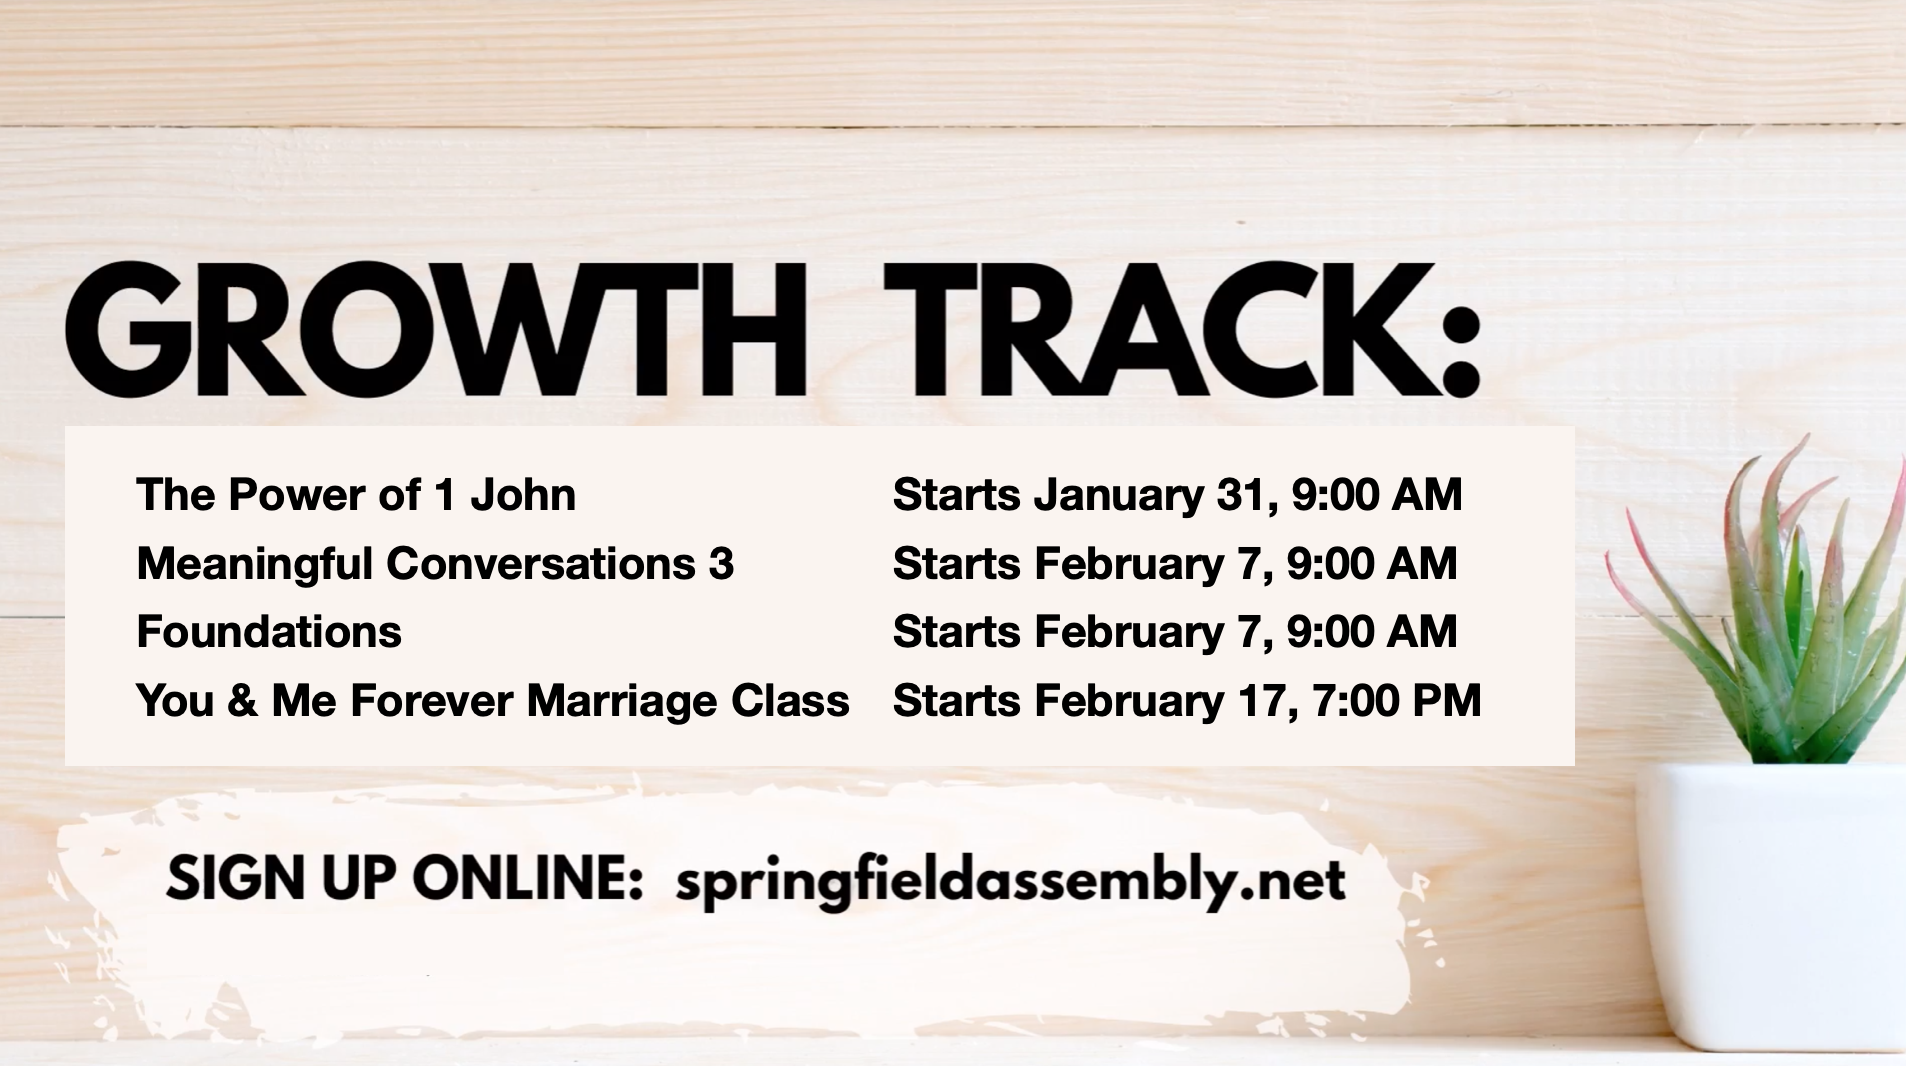 Grow Track 2 Classes to learn about life